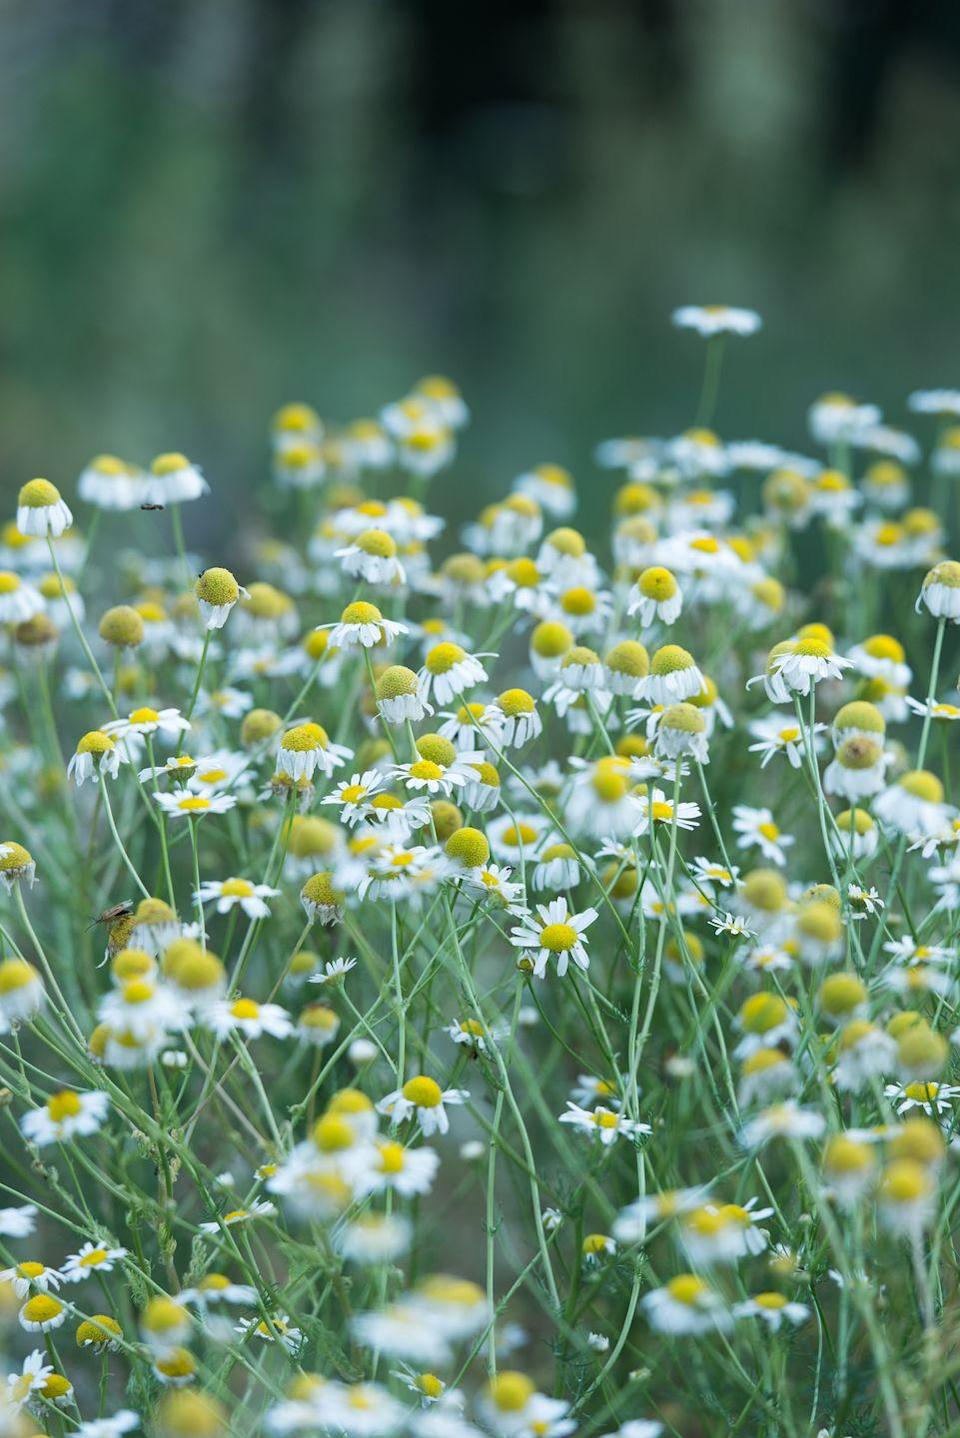 """<p>Chamomile produces pretty, daisy-like flowers which can be harvested, dried, and steeped in hot water to make tea. Look for Roman chamomile, which is a perennial, as opposed to German chamomile, which is an annual. Its feathery leaves also make it an attractive groundcover-like plant.</p><p><a class=""""link rapid-noclick-resp"""" href=""""https://go.redirectingat.com?id=74968X1596630&url=https%3A%2F%2Fwww.burpee.com%2Fherbs%2Fchamomile%2Fchamomile-roman-prod001077.html&sref=https%3A%2F%2Fwww.thepioneerwoman.com%2Fhome-lifestyle%2Fgardening%2Fg36533467%2Fbest-perennial-herbs%2F"""" rel=""""nofollow noopener"""" target=""""_blank"""" data-ylk=""""slk:SHOP NOW"""">SHOP NOW</a></p>"""